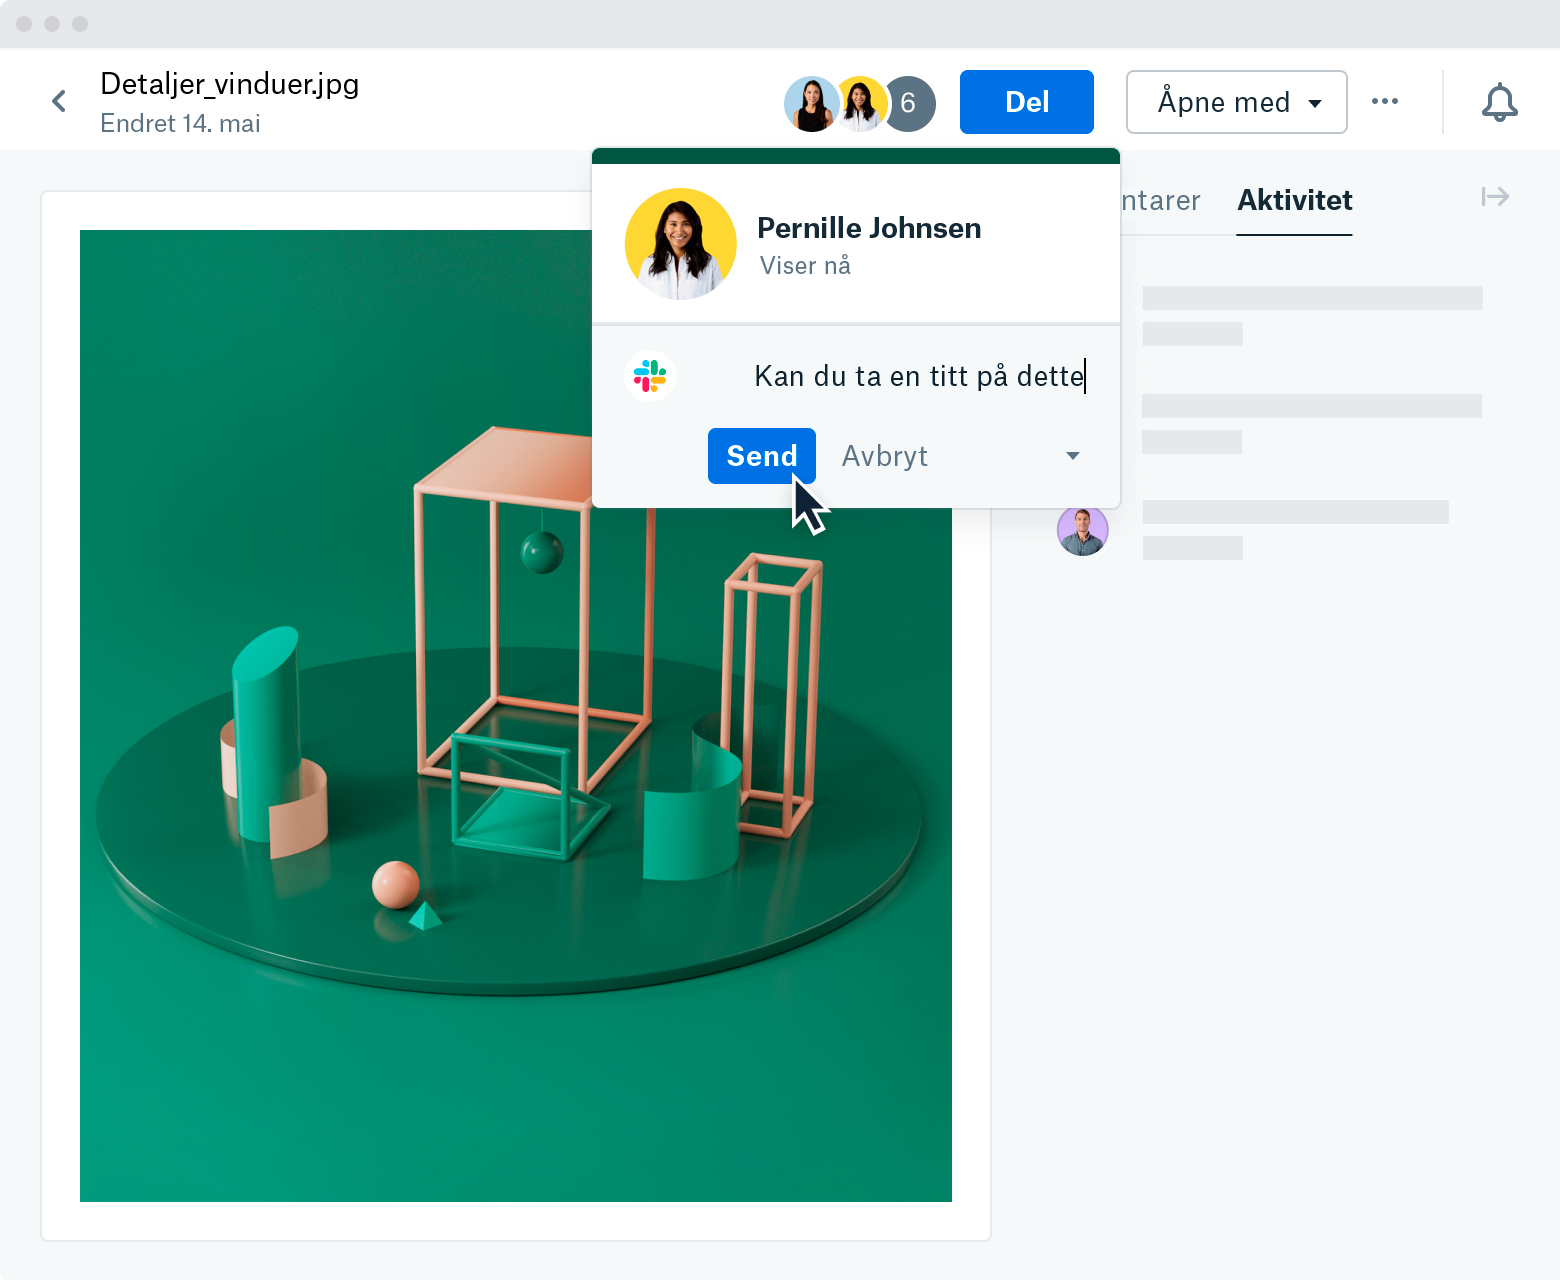 """A screenshot of a """"Share drop down menu"""" that appears after selecting """"Slack"""" within a file preview on Dropbox.com. The menu shows a Patricia Johnson viewing your file, while you type """"Could you take a look at this"""" into a Slack message below. The mouse is hovering over """"Send""""."""